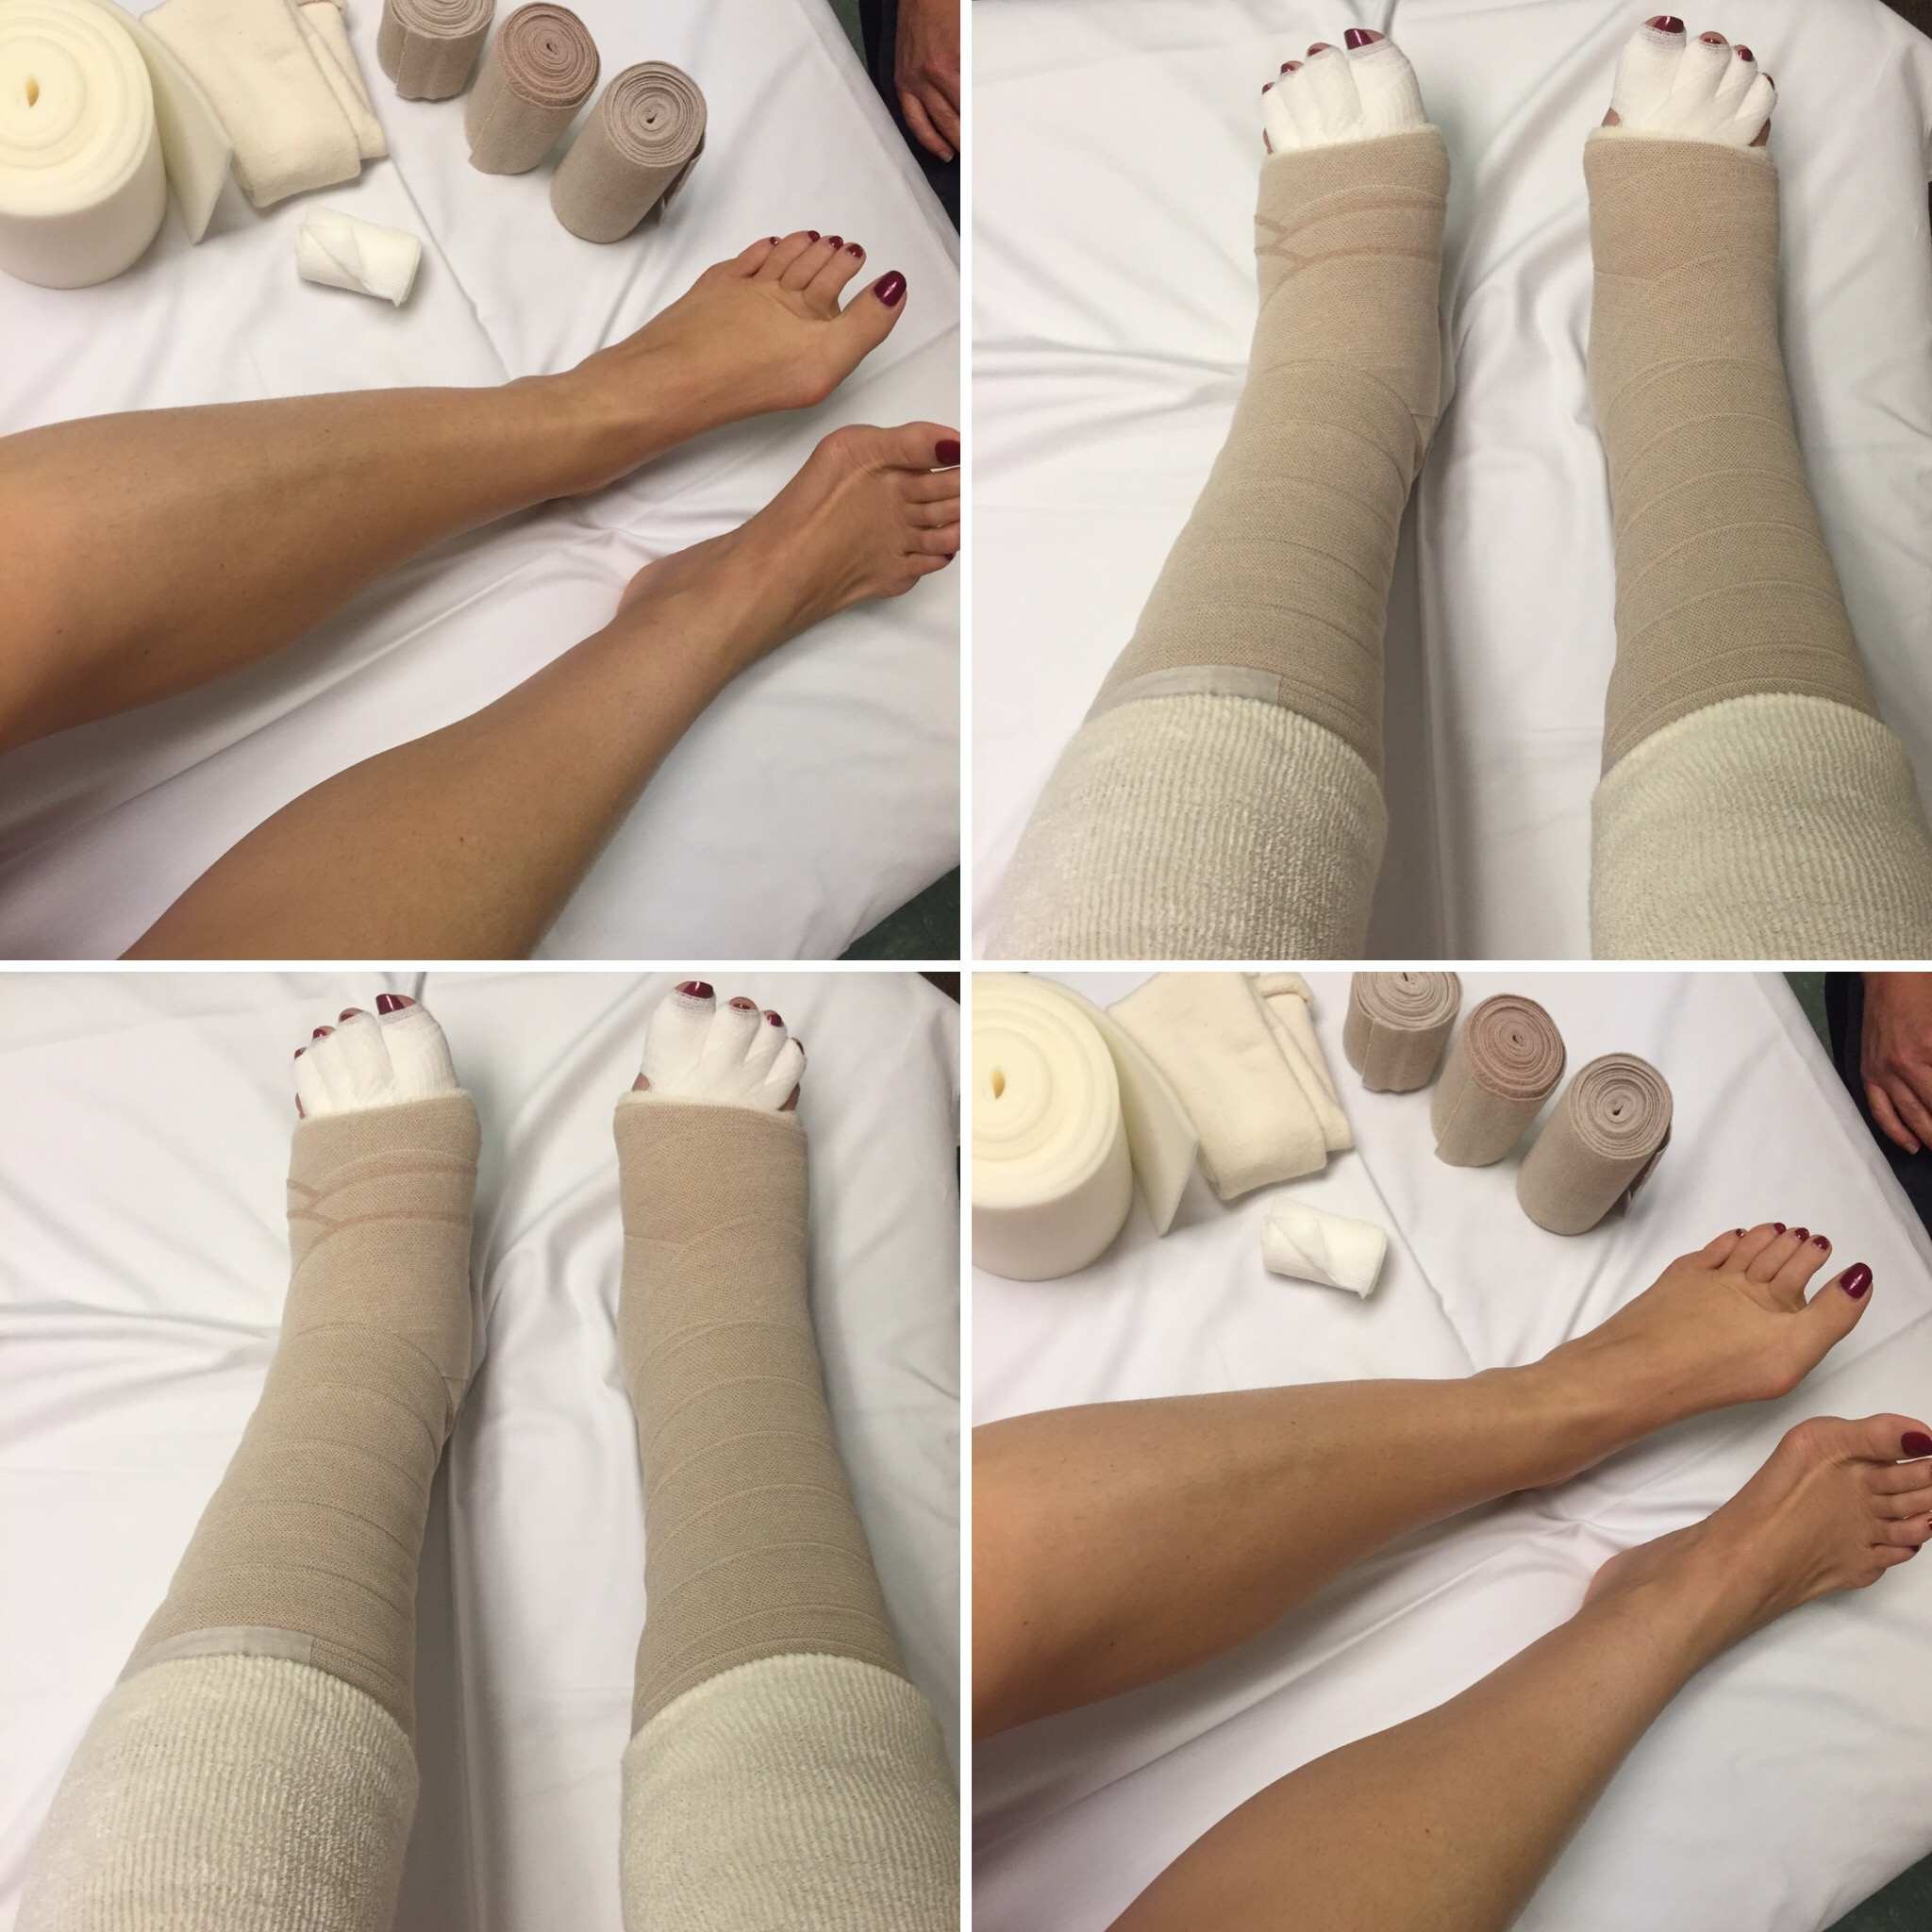 Amy Santiago_Lymphedema Treatment